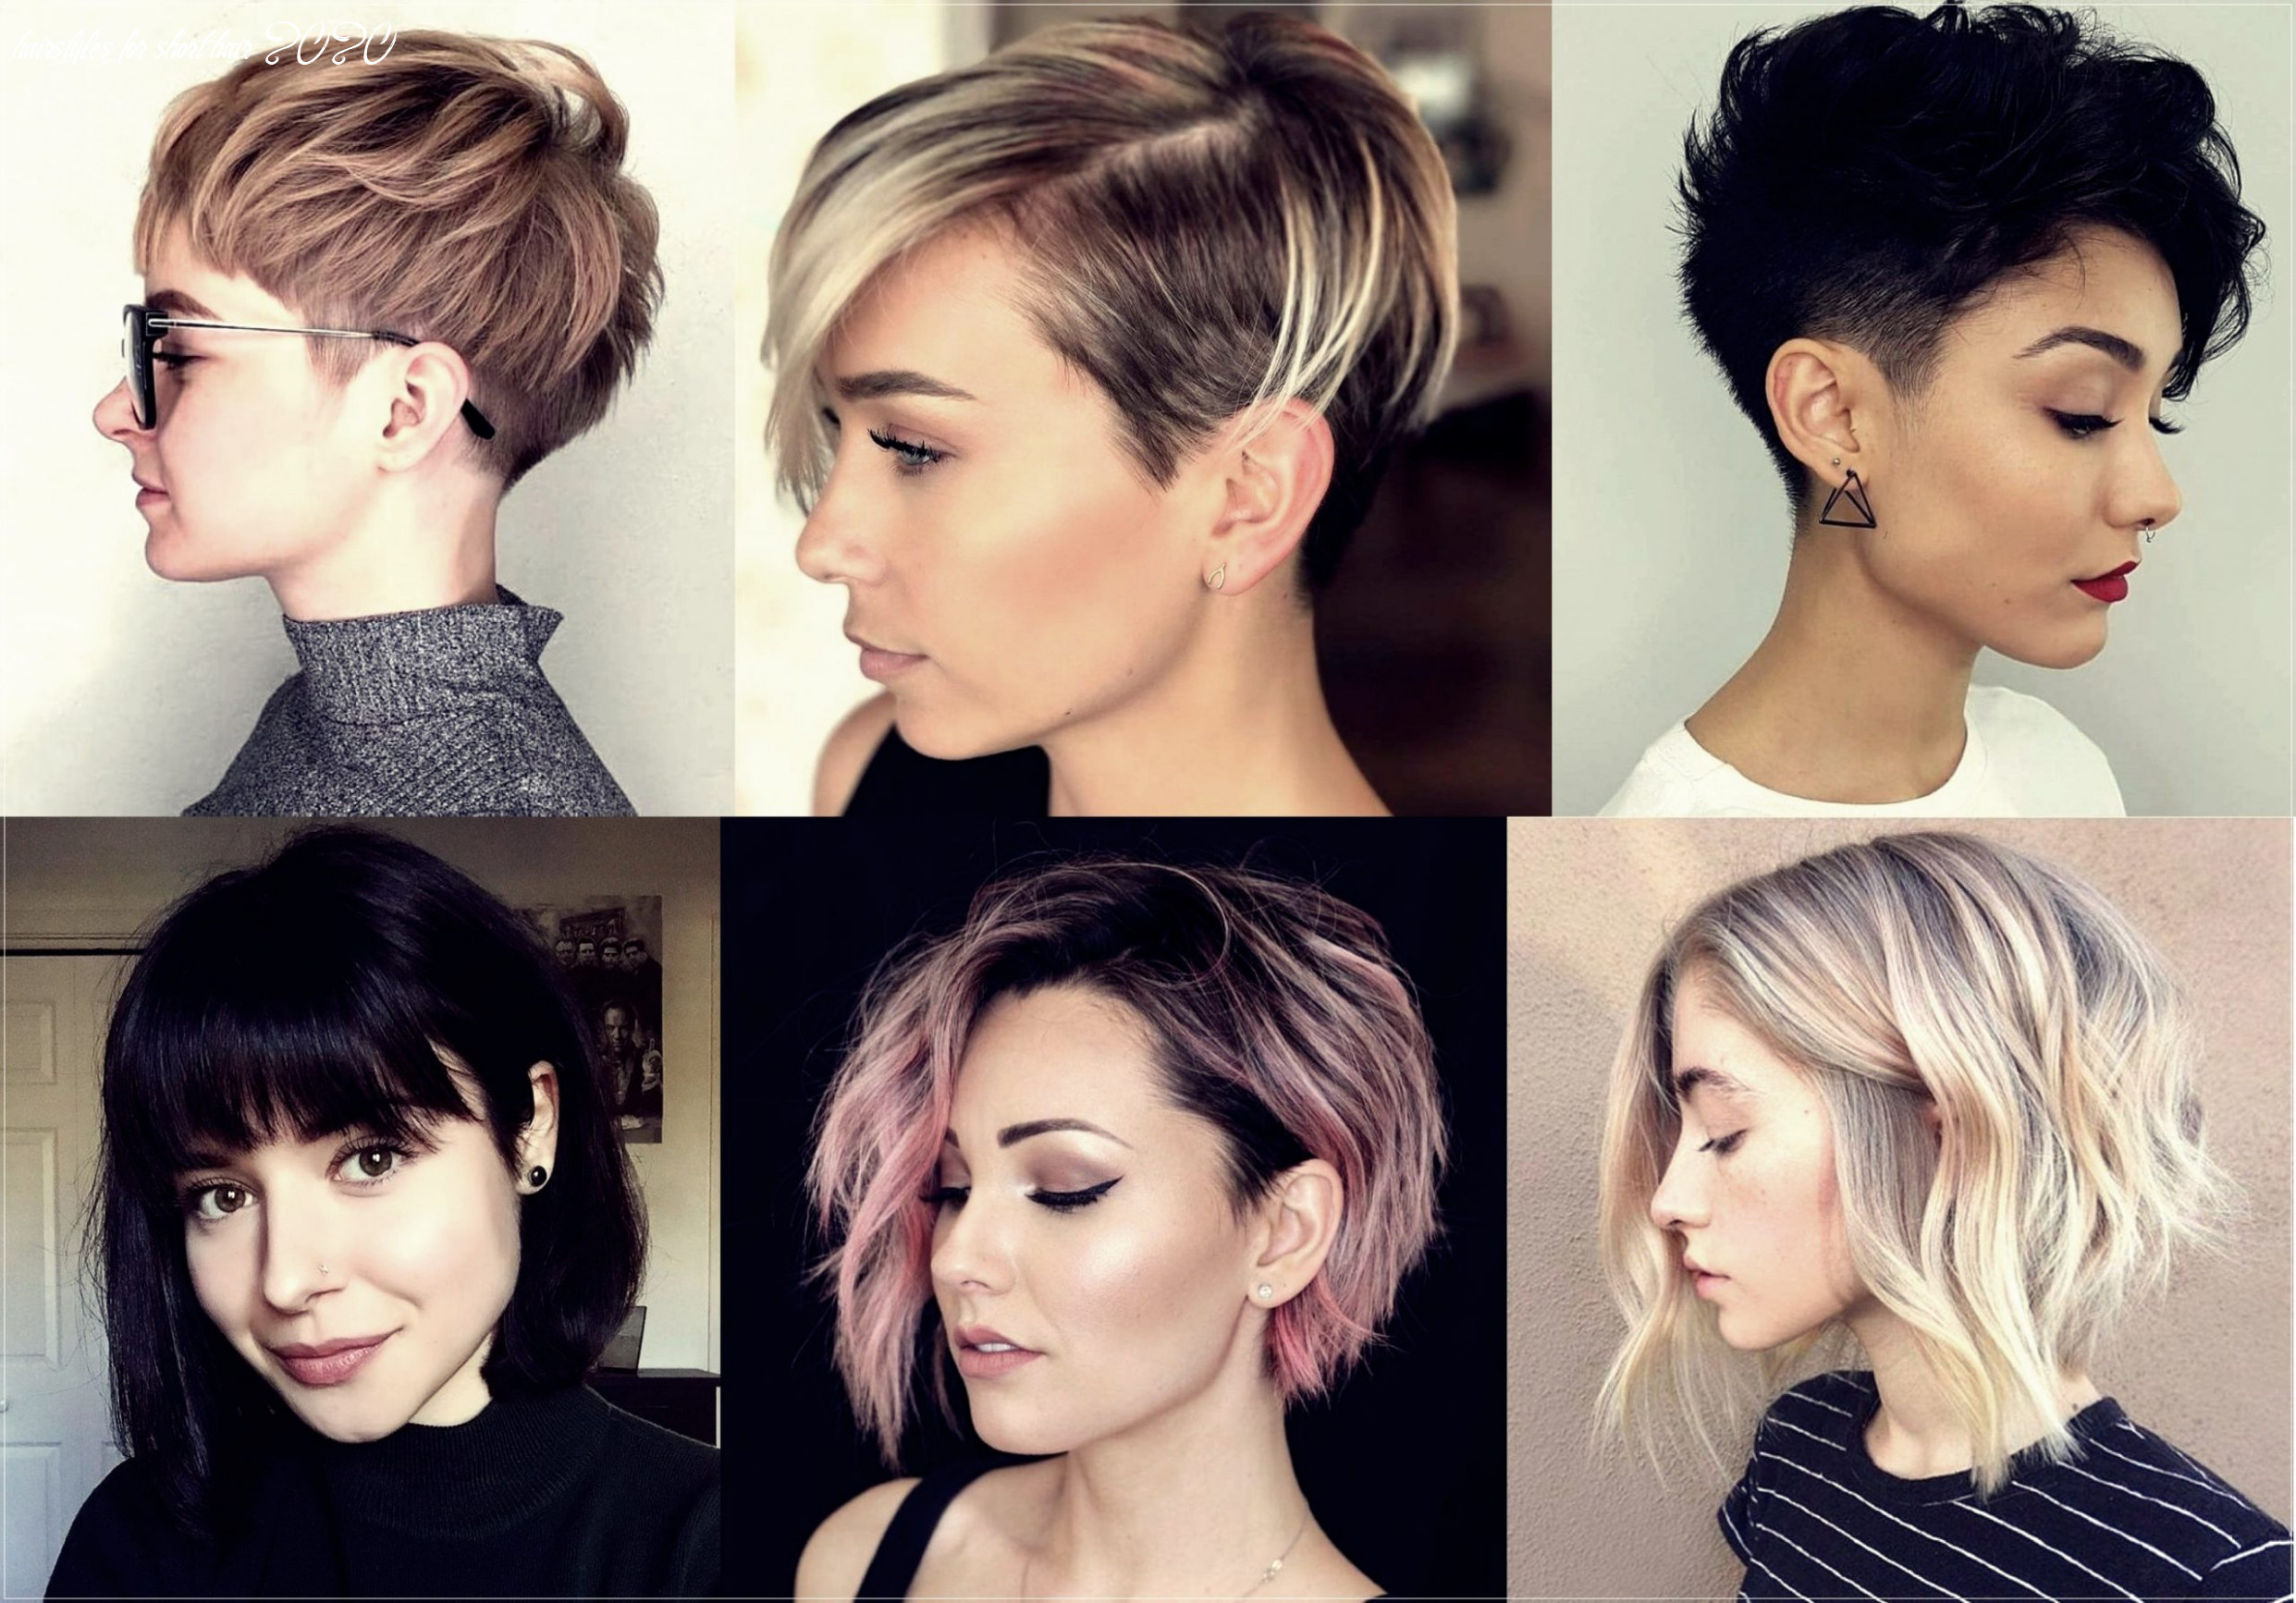 Short haircuts 12: 12 photos and trends | hairstyles for short hair 2020